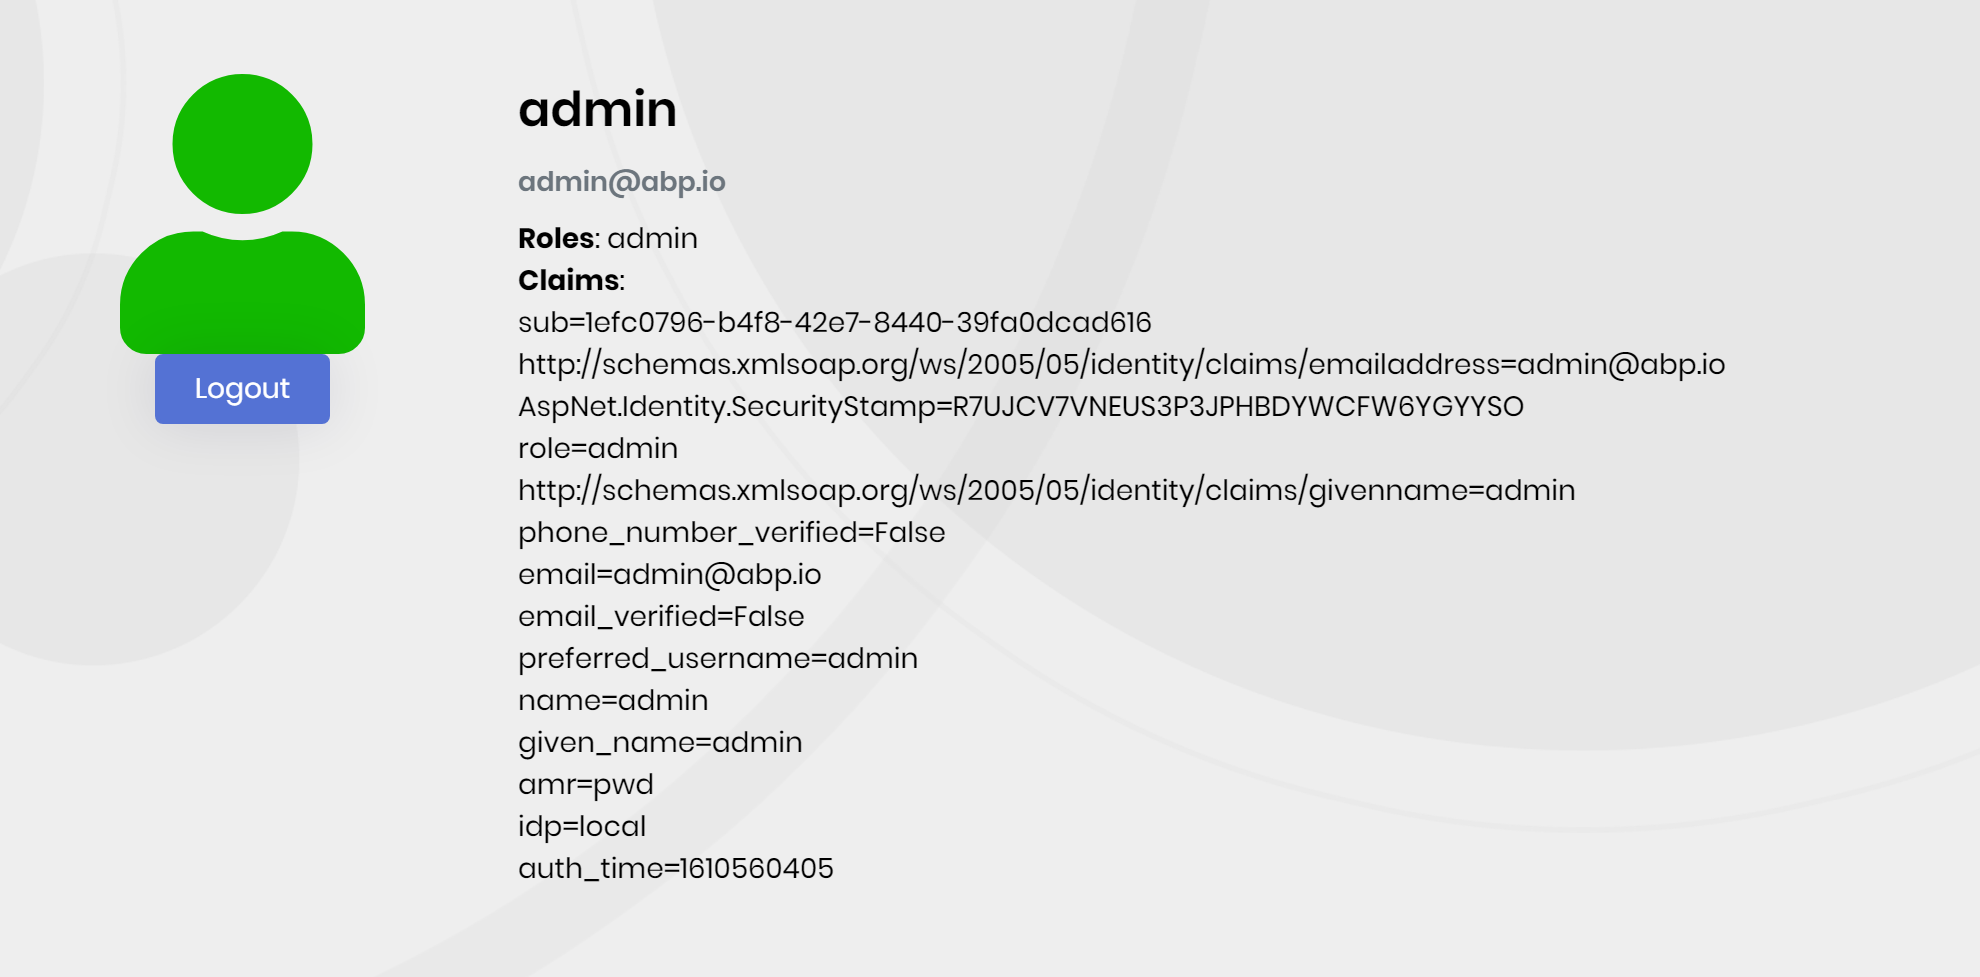 microservice-template-auth-server-after-login-page